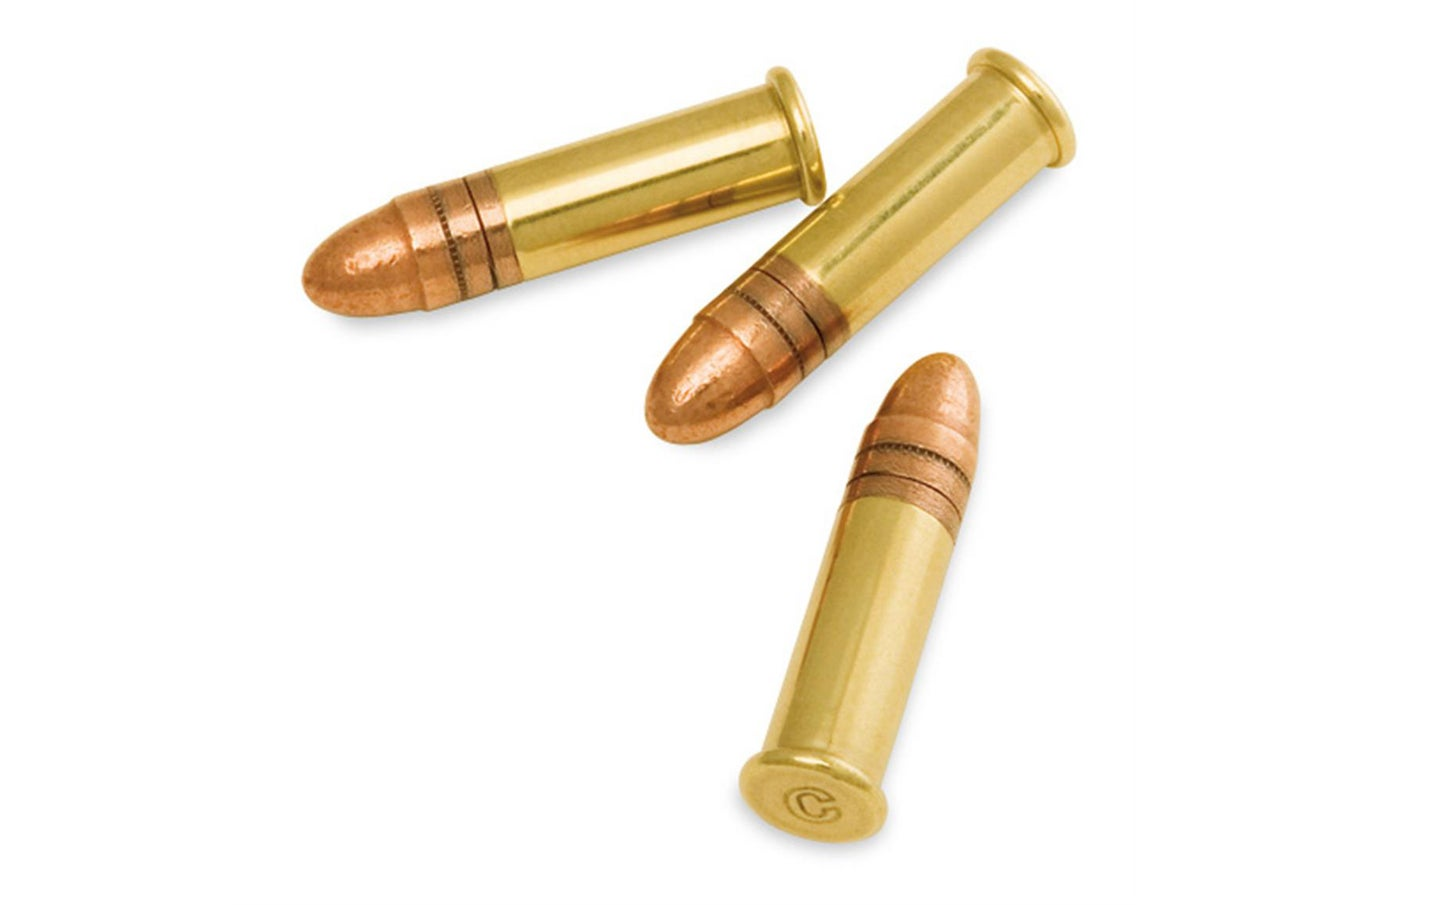 .22 Cartridge Goes Off in Man's Hand